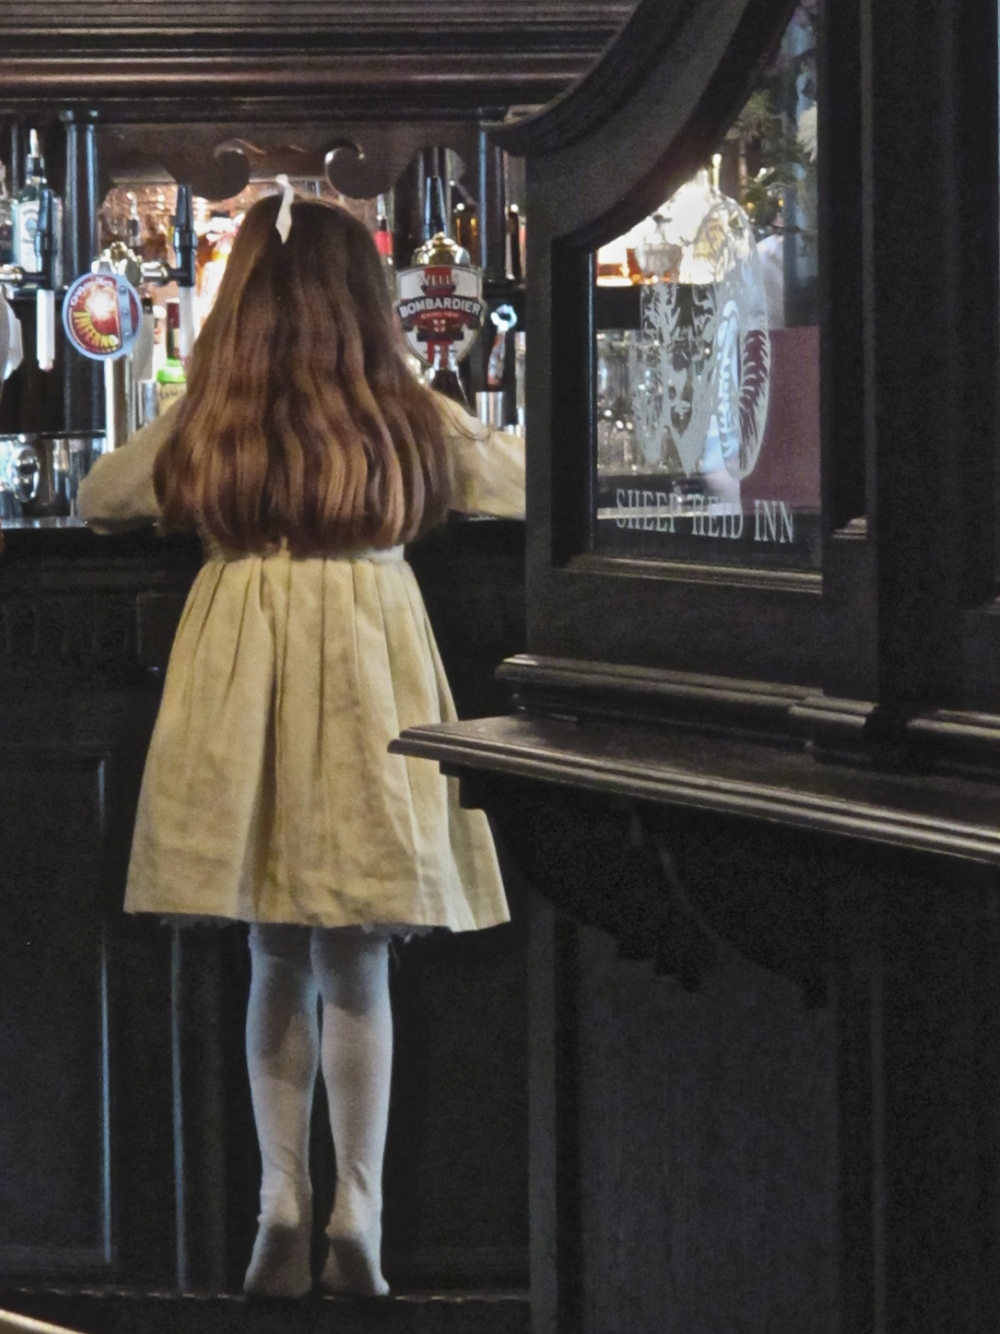 Young girl standing on tiptoe at the Sheep Hied Inn, Edinburgh.